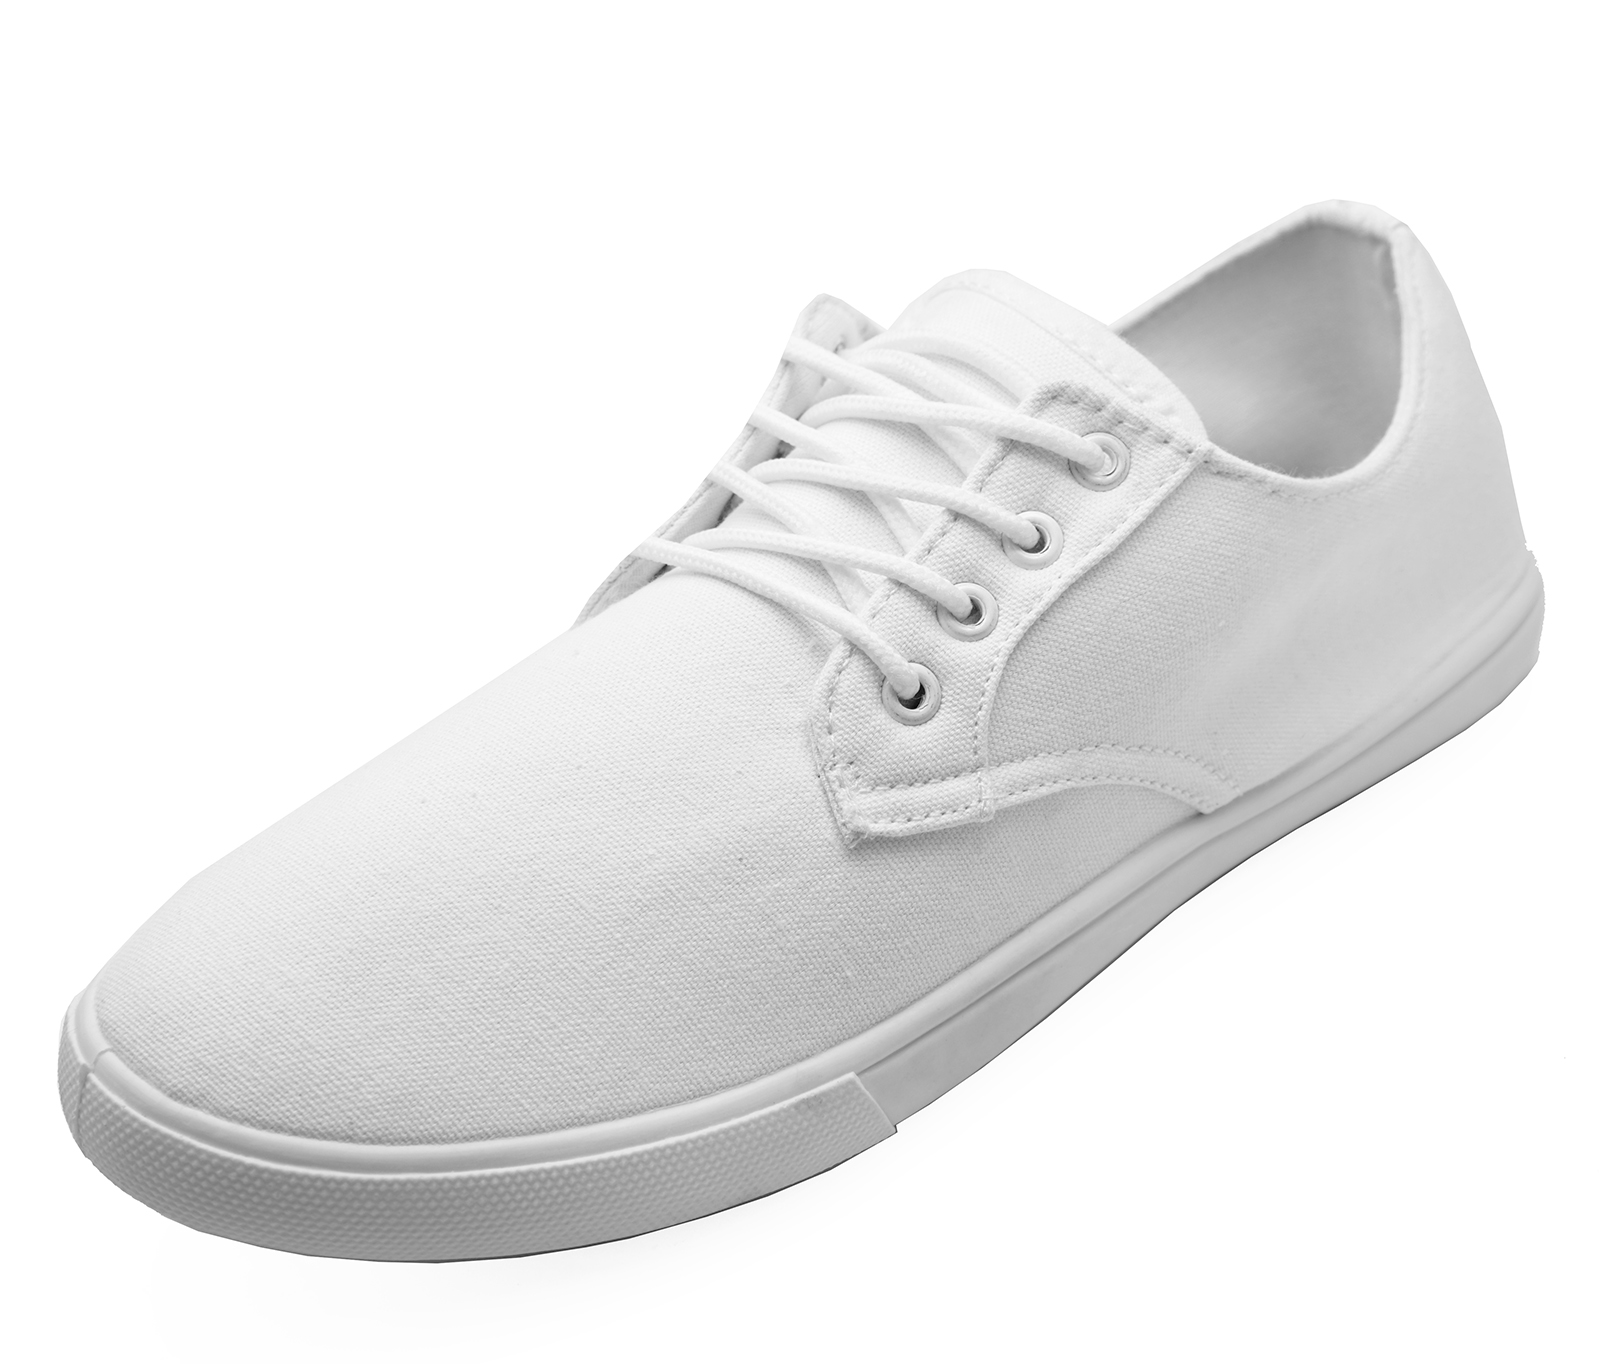 MENS-LACE-UP-WHITE-CANVAS-FLAT-TRAINER-PLIMSOLL-PUMPS-CASUAL-SHOES-SIZES-6-12 thumbnail 22